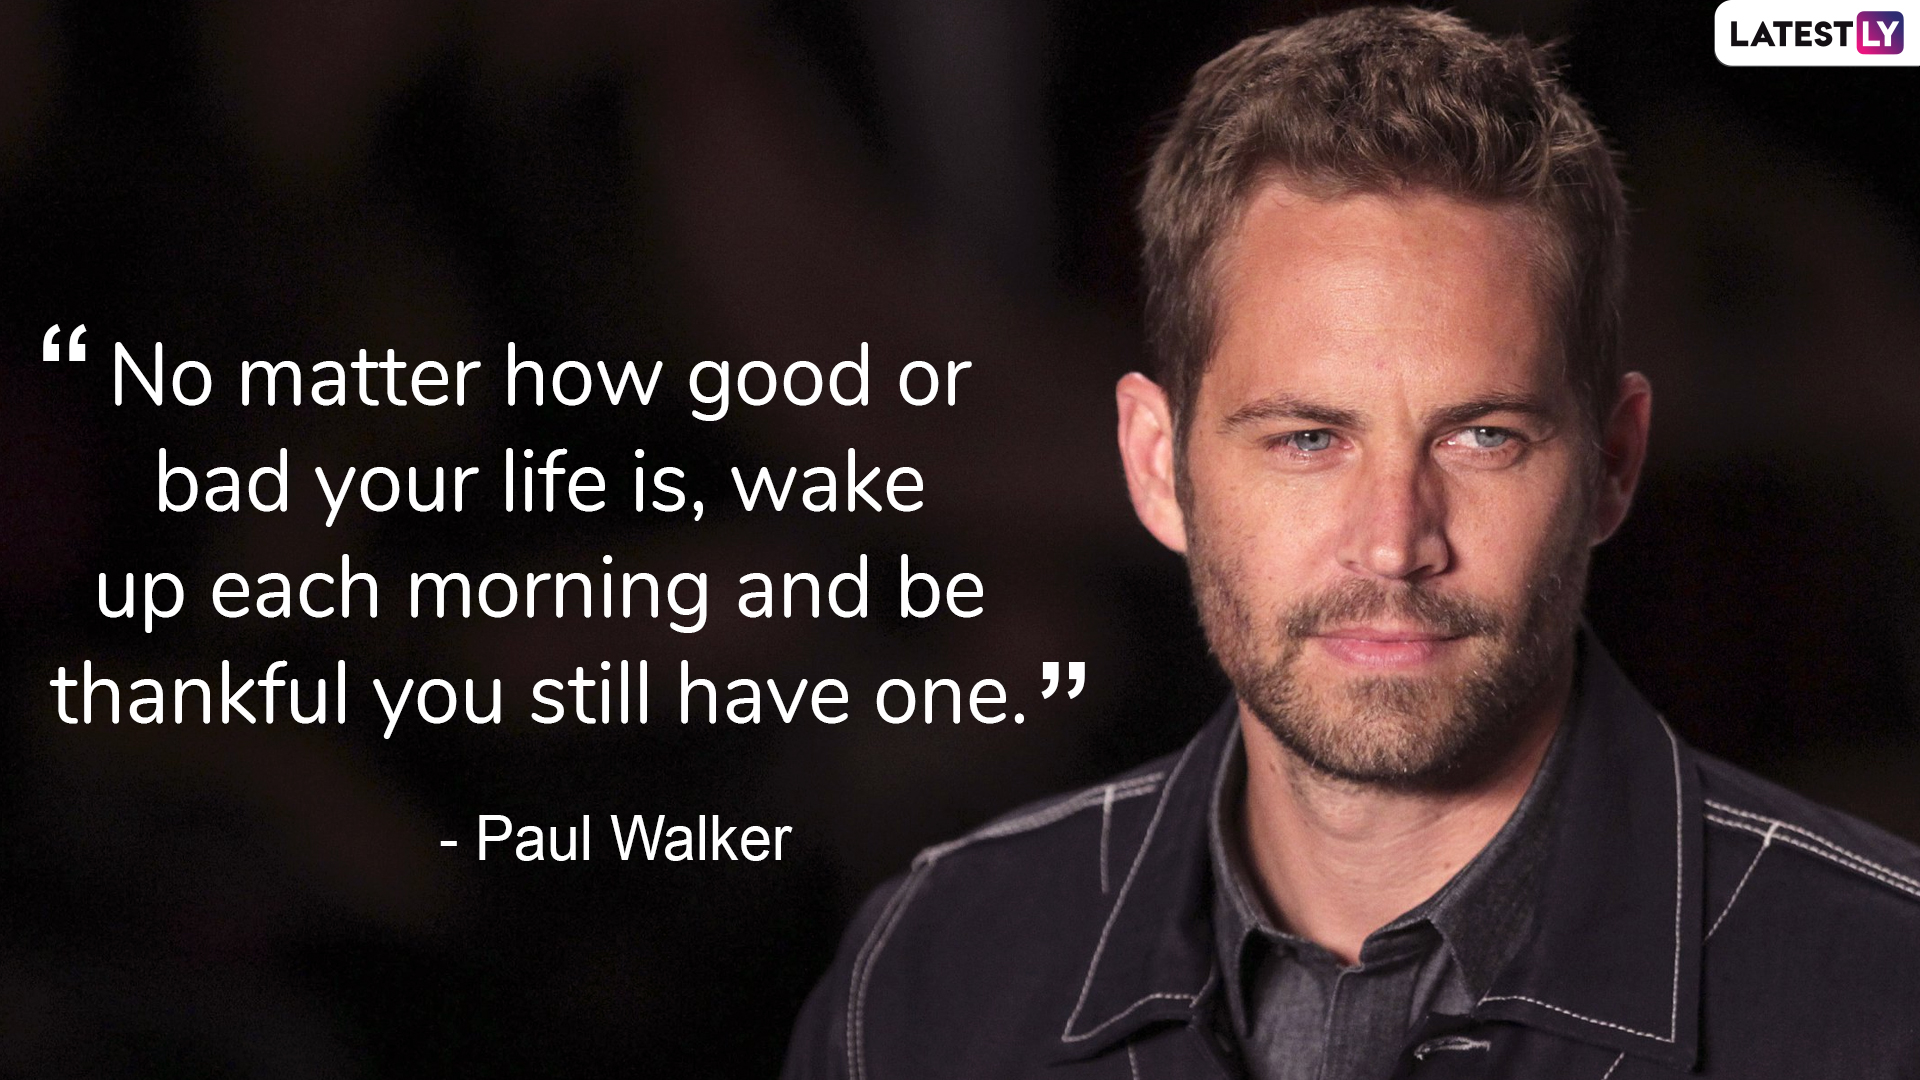 Paul Walker on being thanlful for this life.